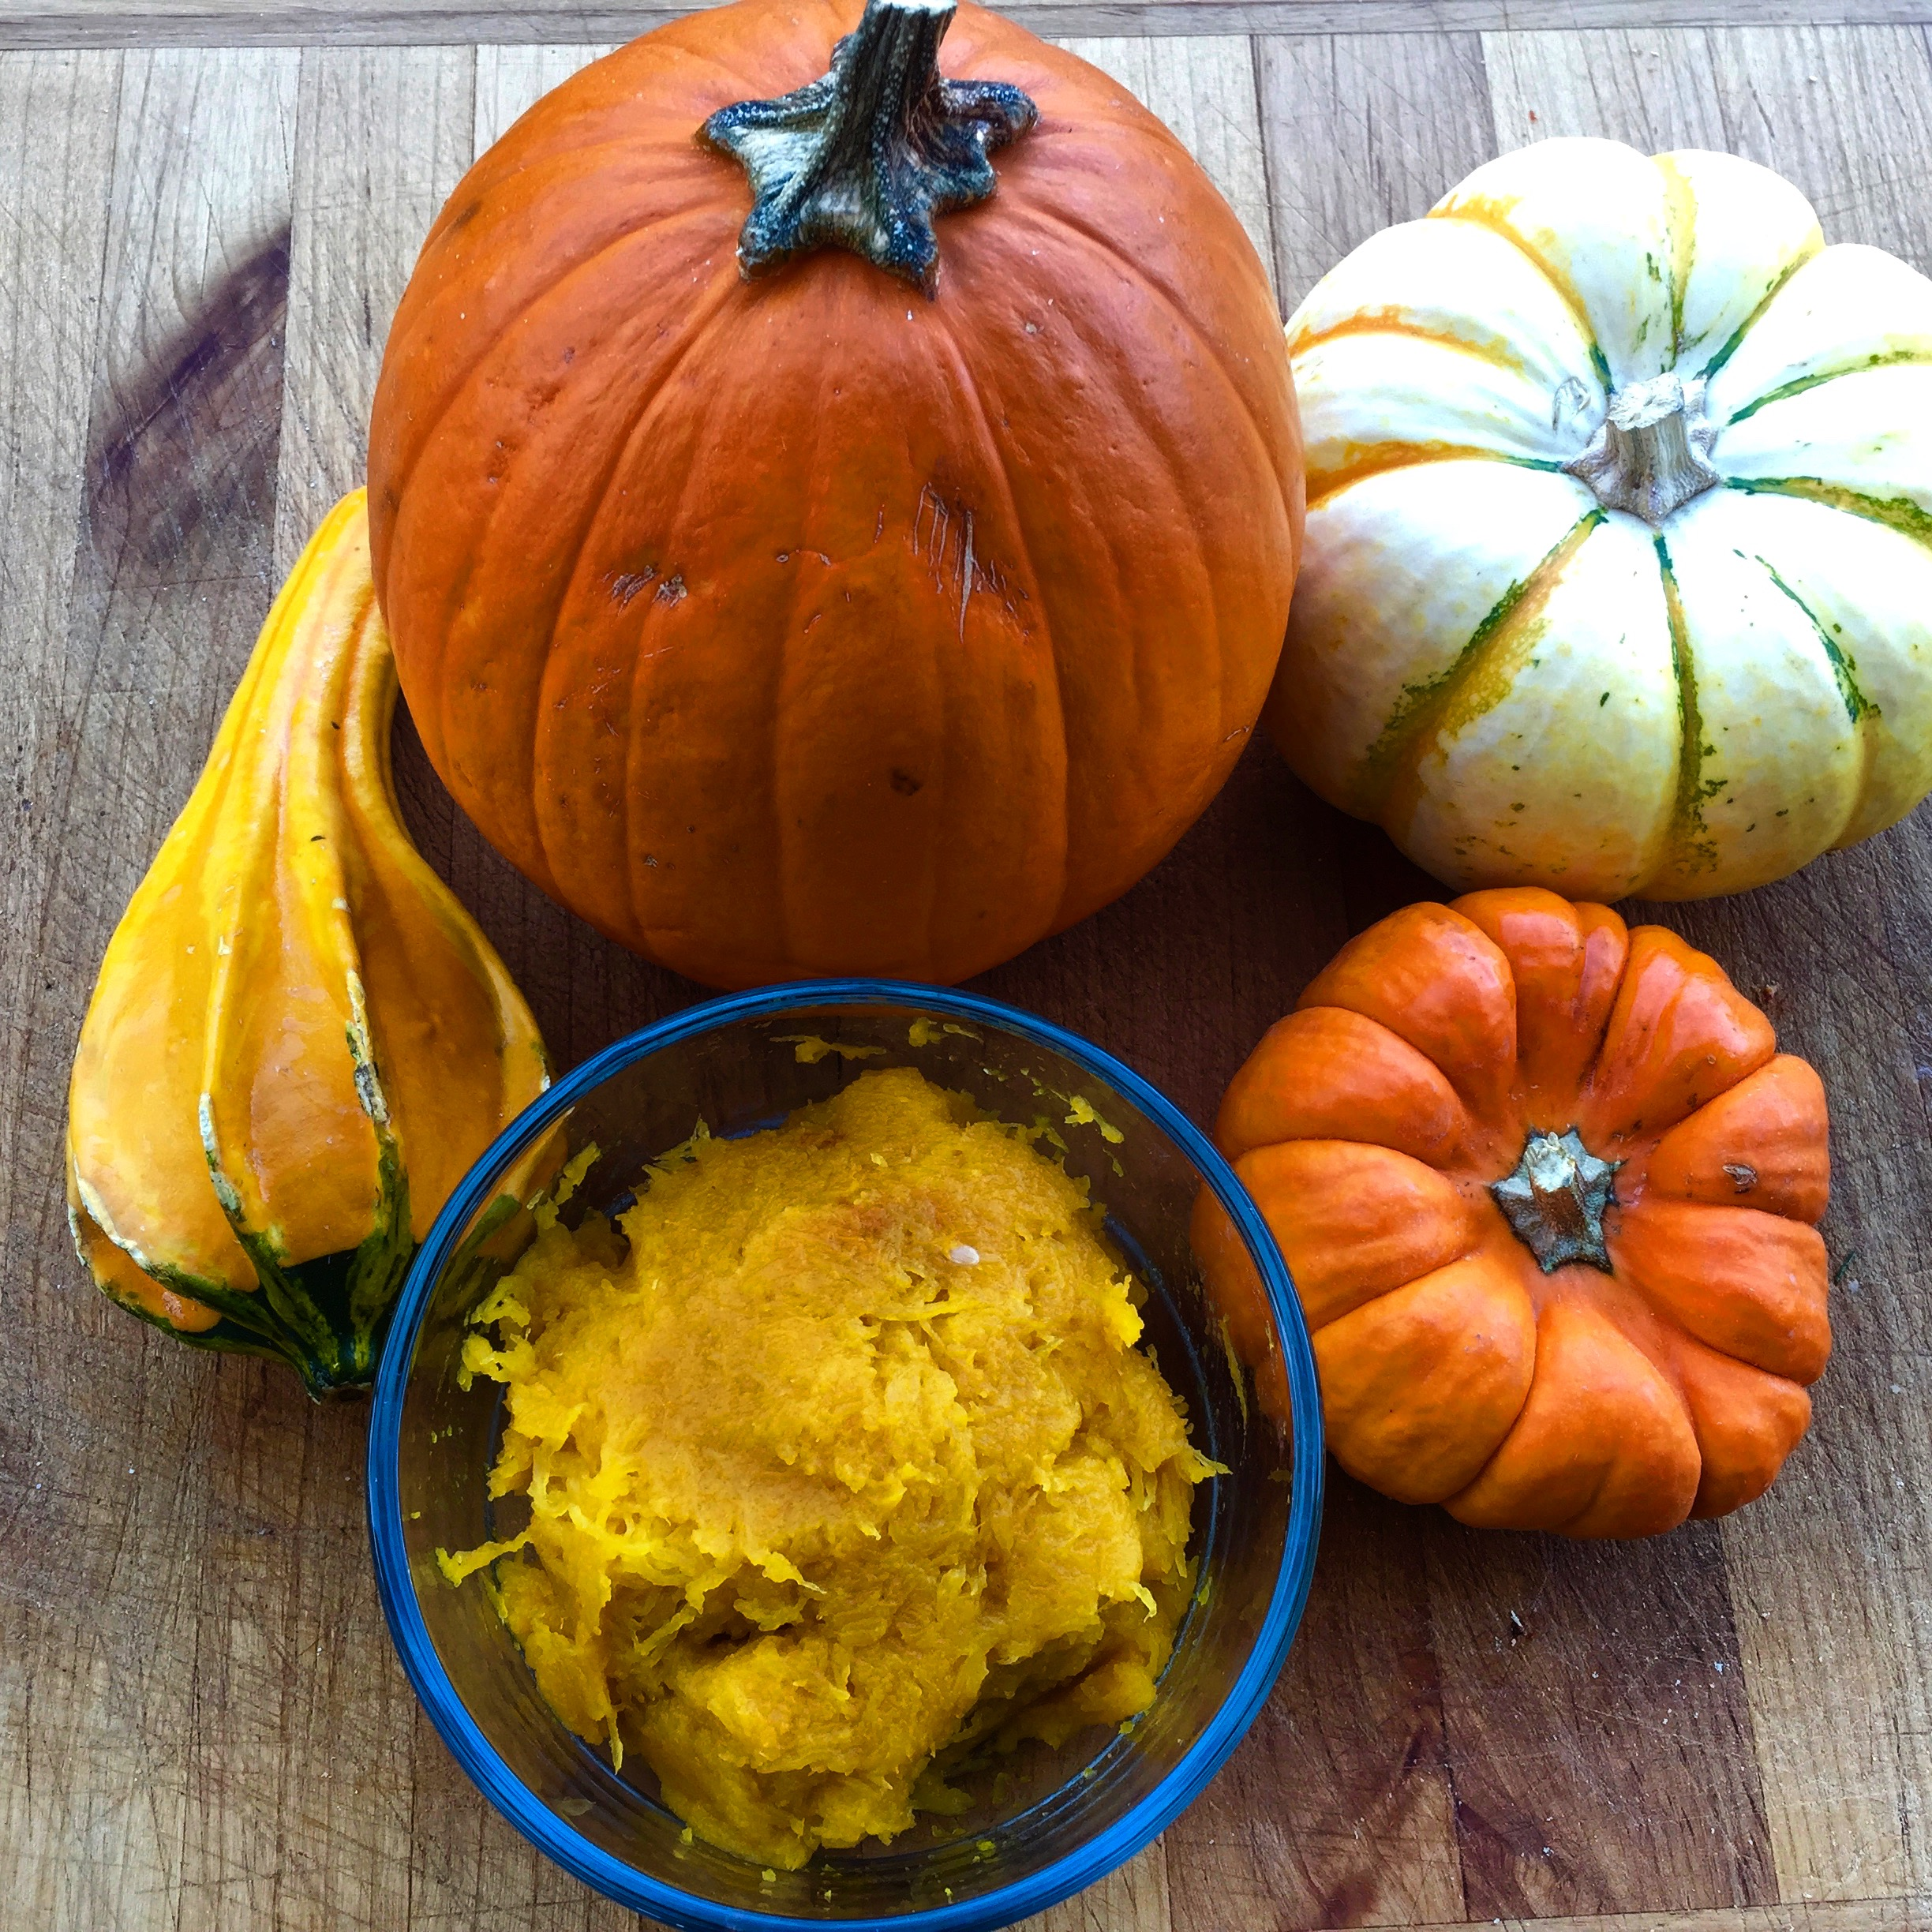 Bake a Pumpkin and Make Pumpkin Puree – the Easiest Way EVER